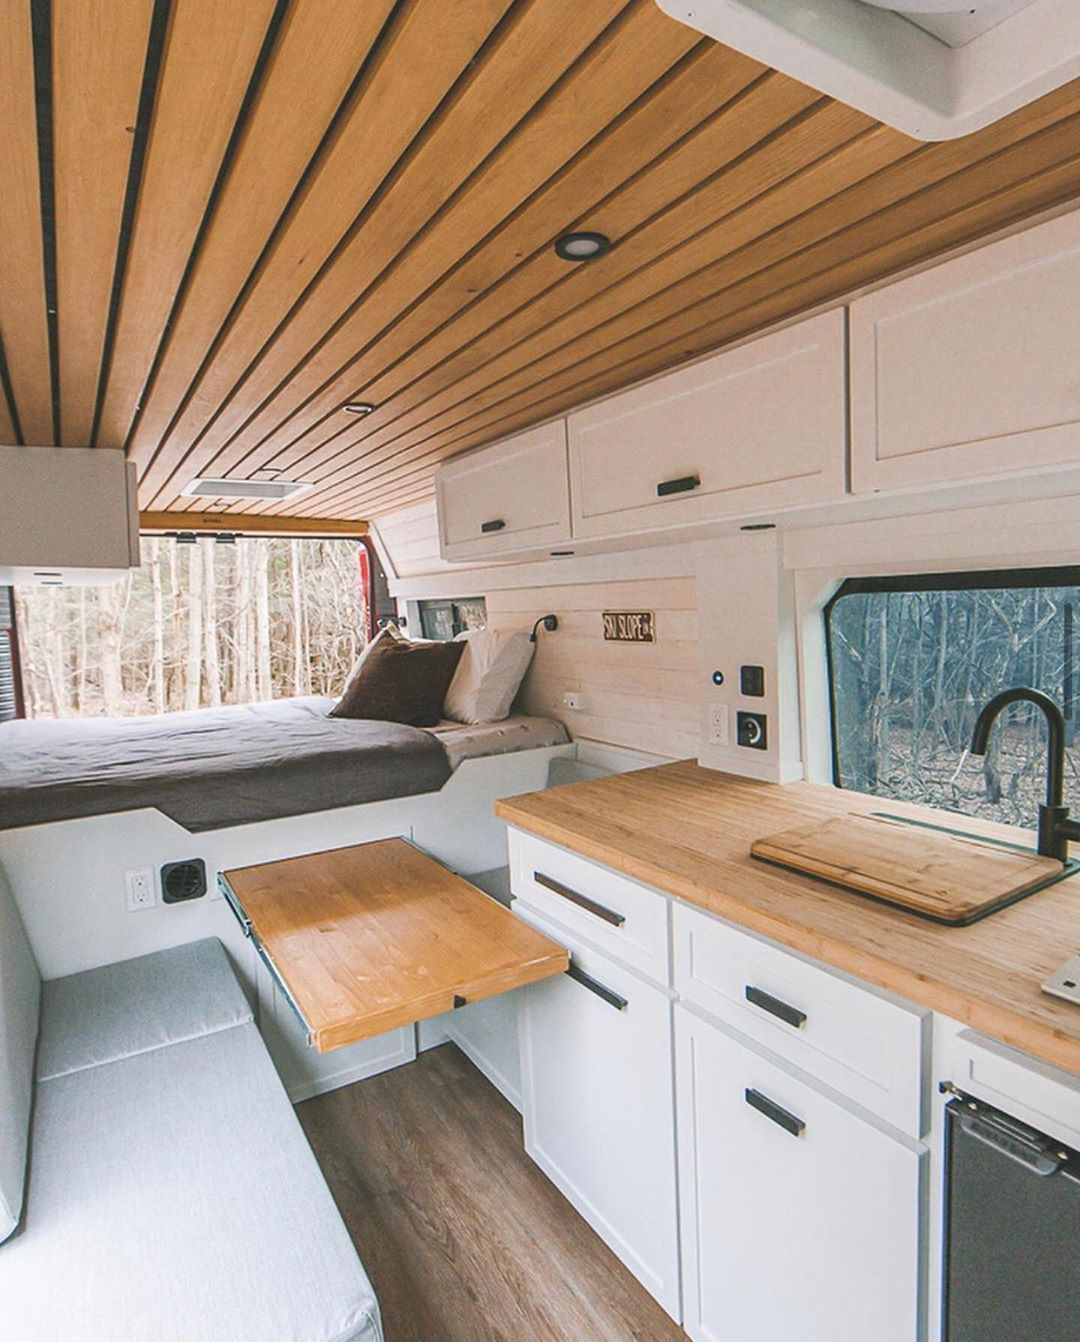 """Photo of Vanlife Living on Instagram: """"Rate this van conversion from 1-10!😍 Follow @vanlife.living for more!💛 • • 📸 @vanlife.sagas"""""""